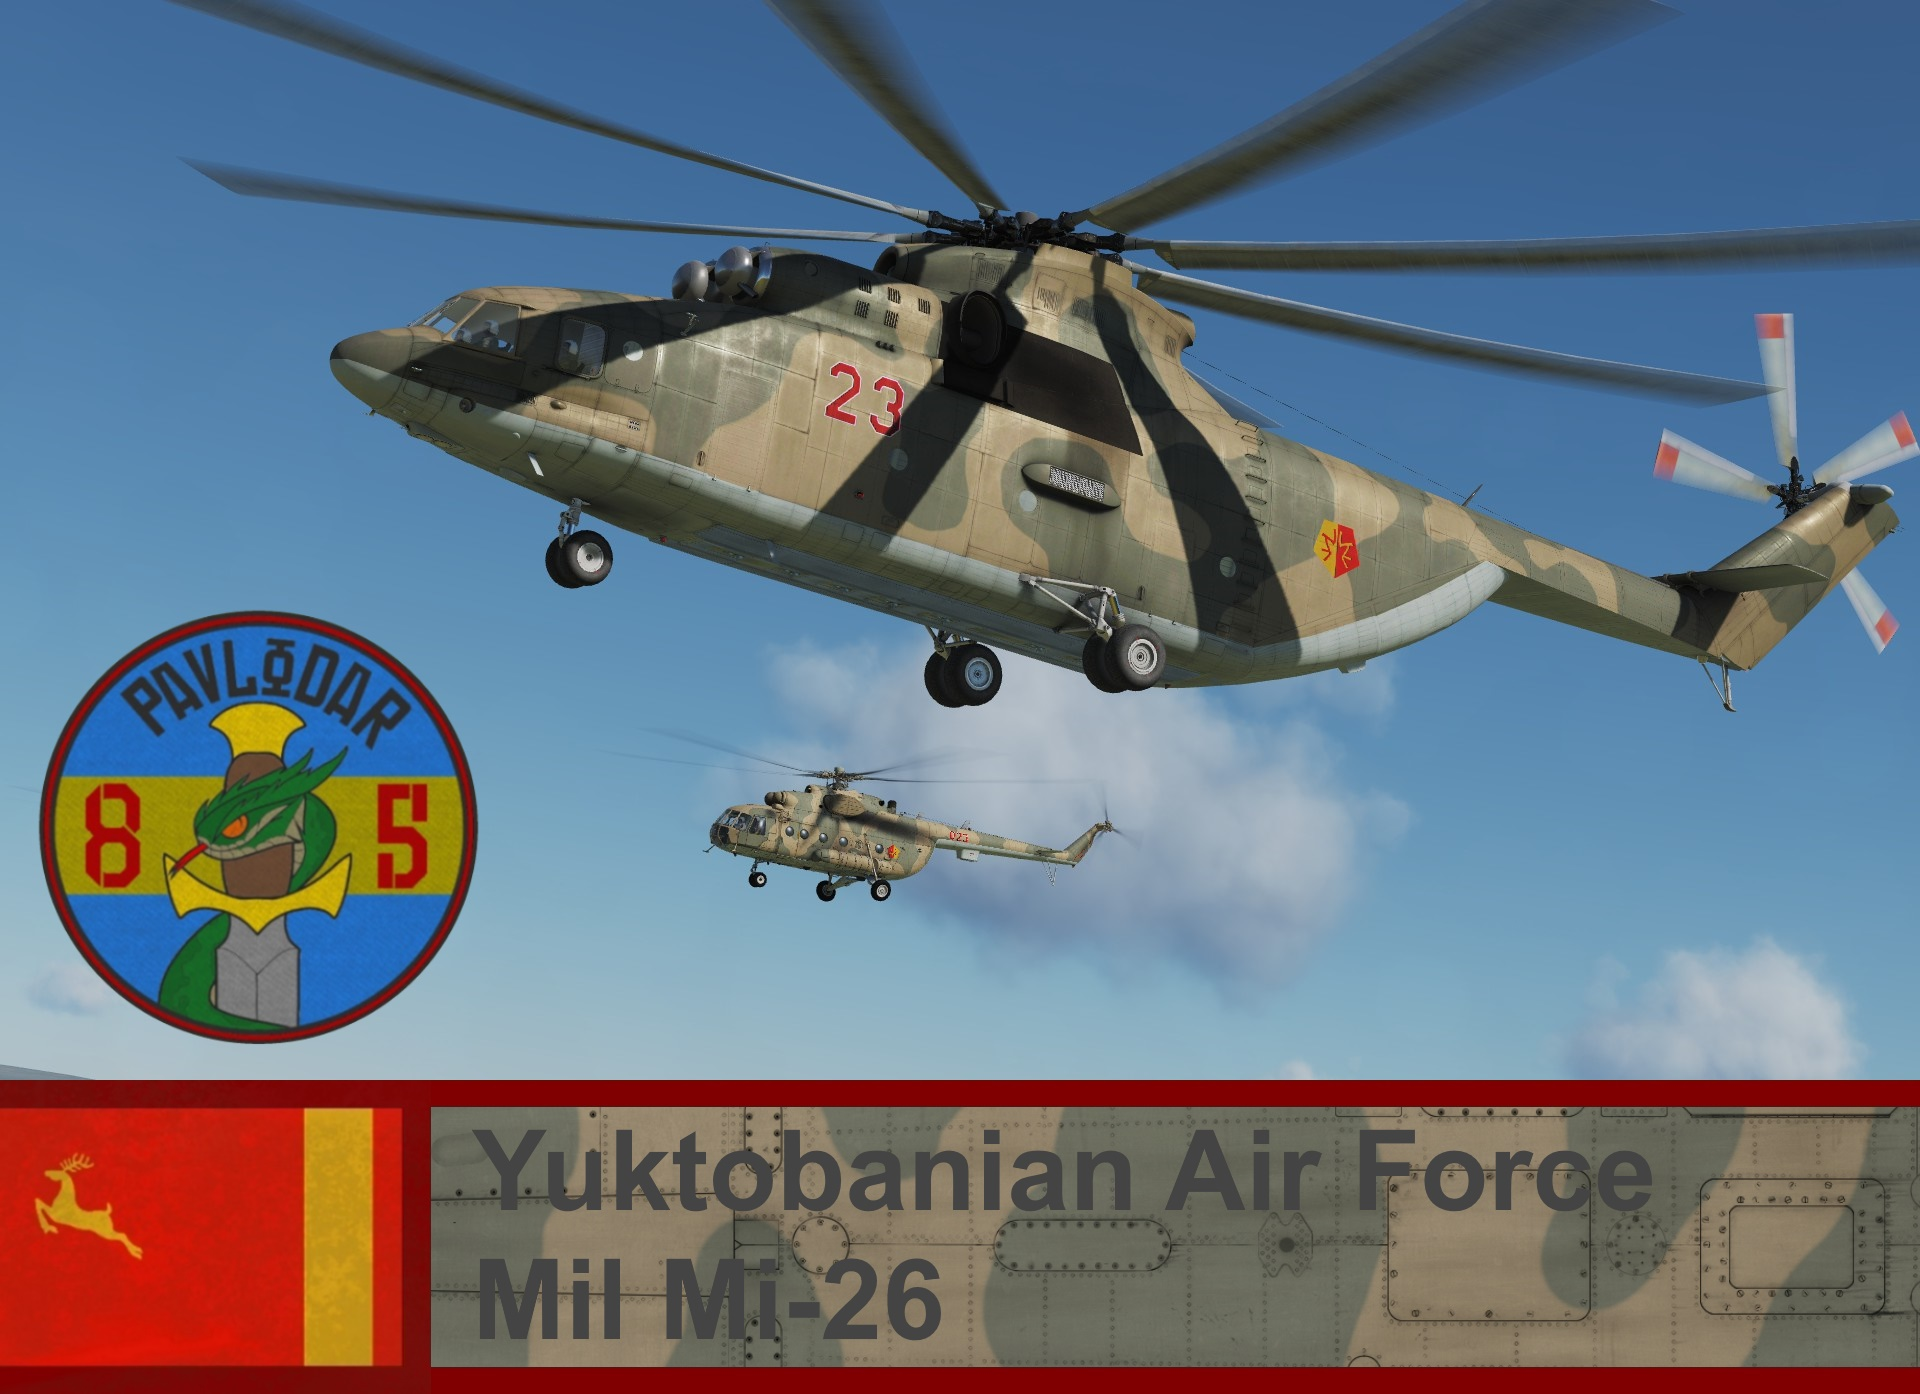 Yuktobanian Air Force Mi-26 - Ace Combat 5 (85 IHS)